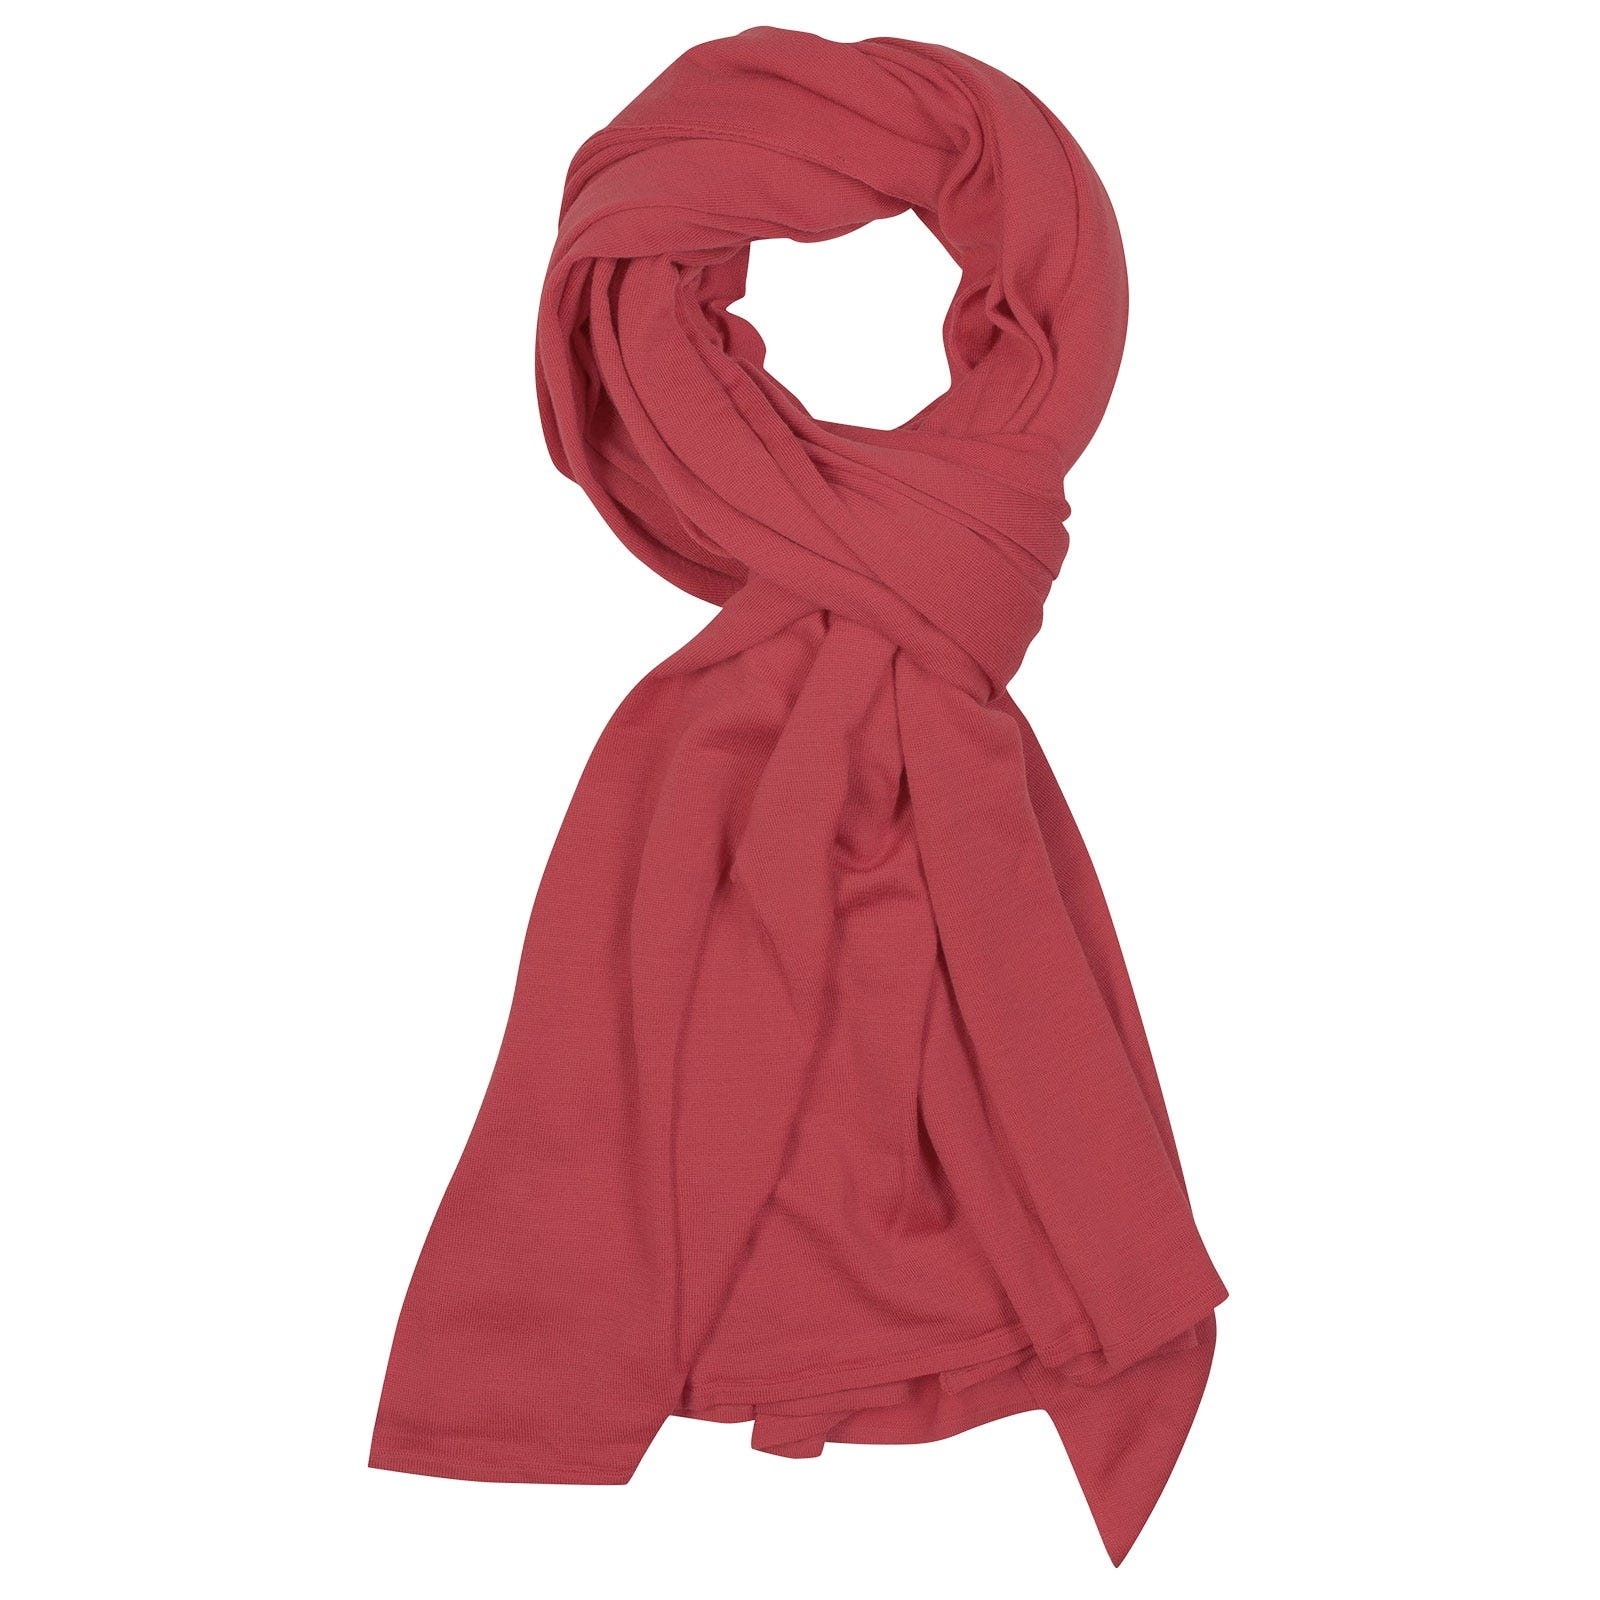 John Smedley Wings Merino Wool Shawl in Atomic Cerise-ONE